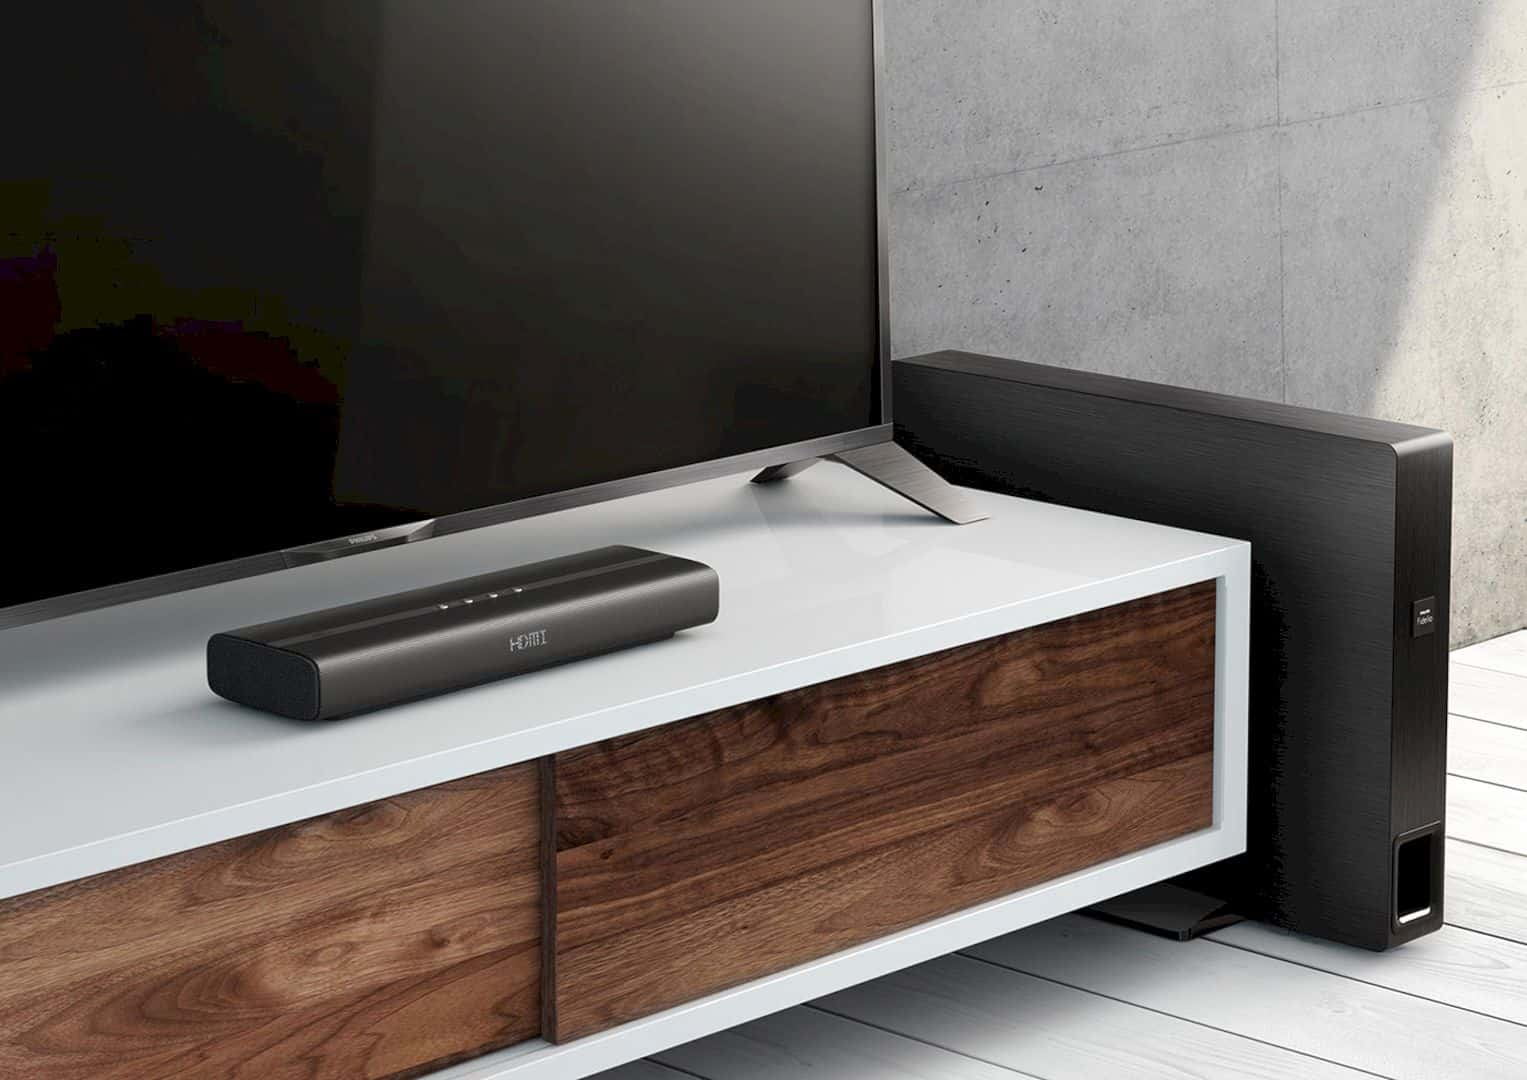 The Philips Fidelio Soundbar: The­ Compact and Immersive Cinematic Sound System